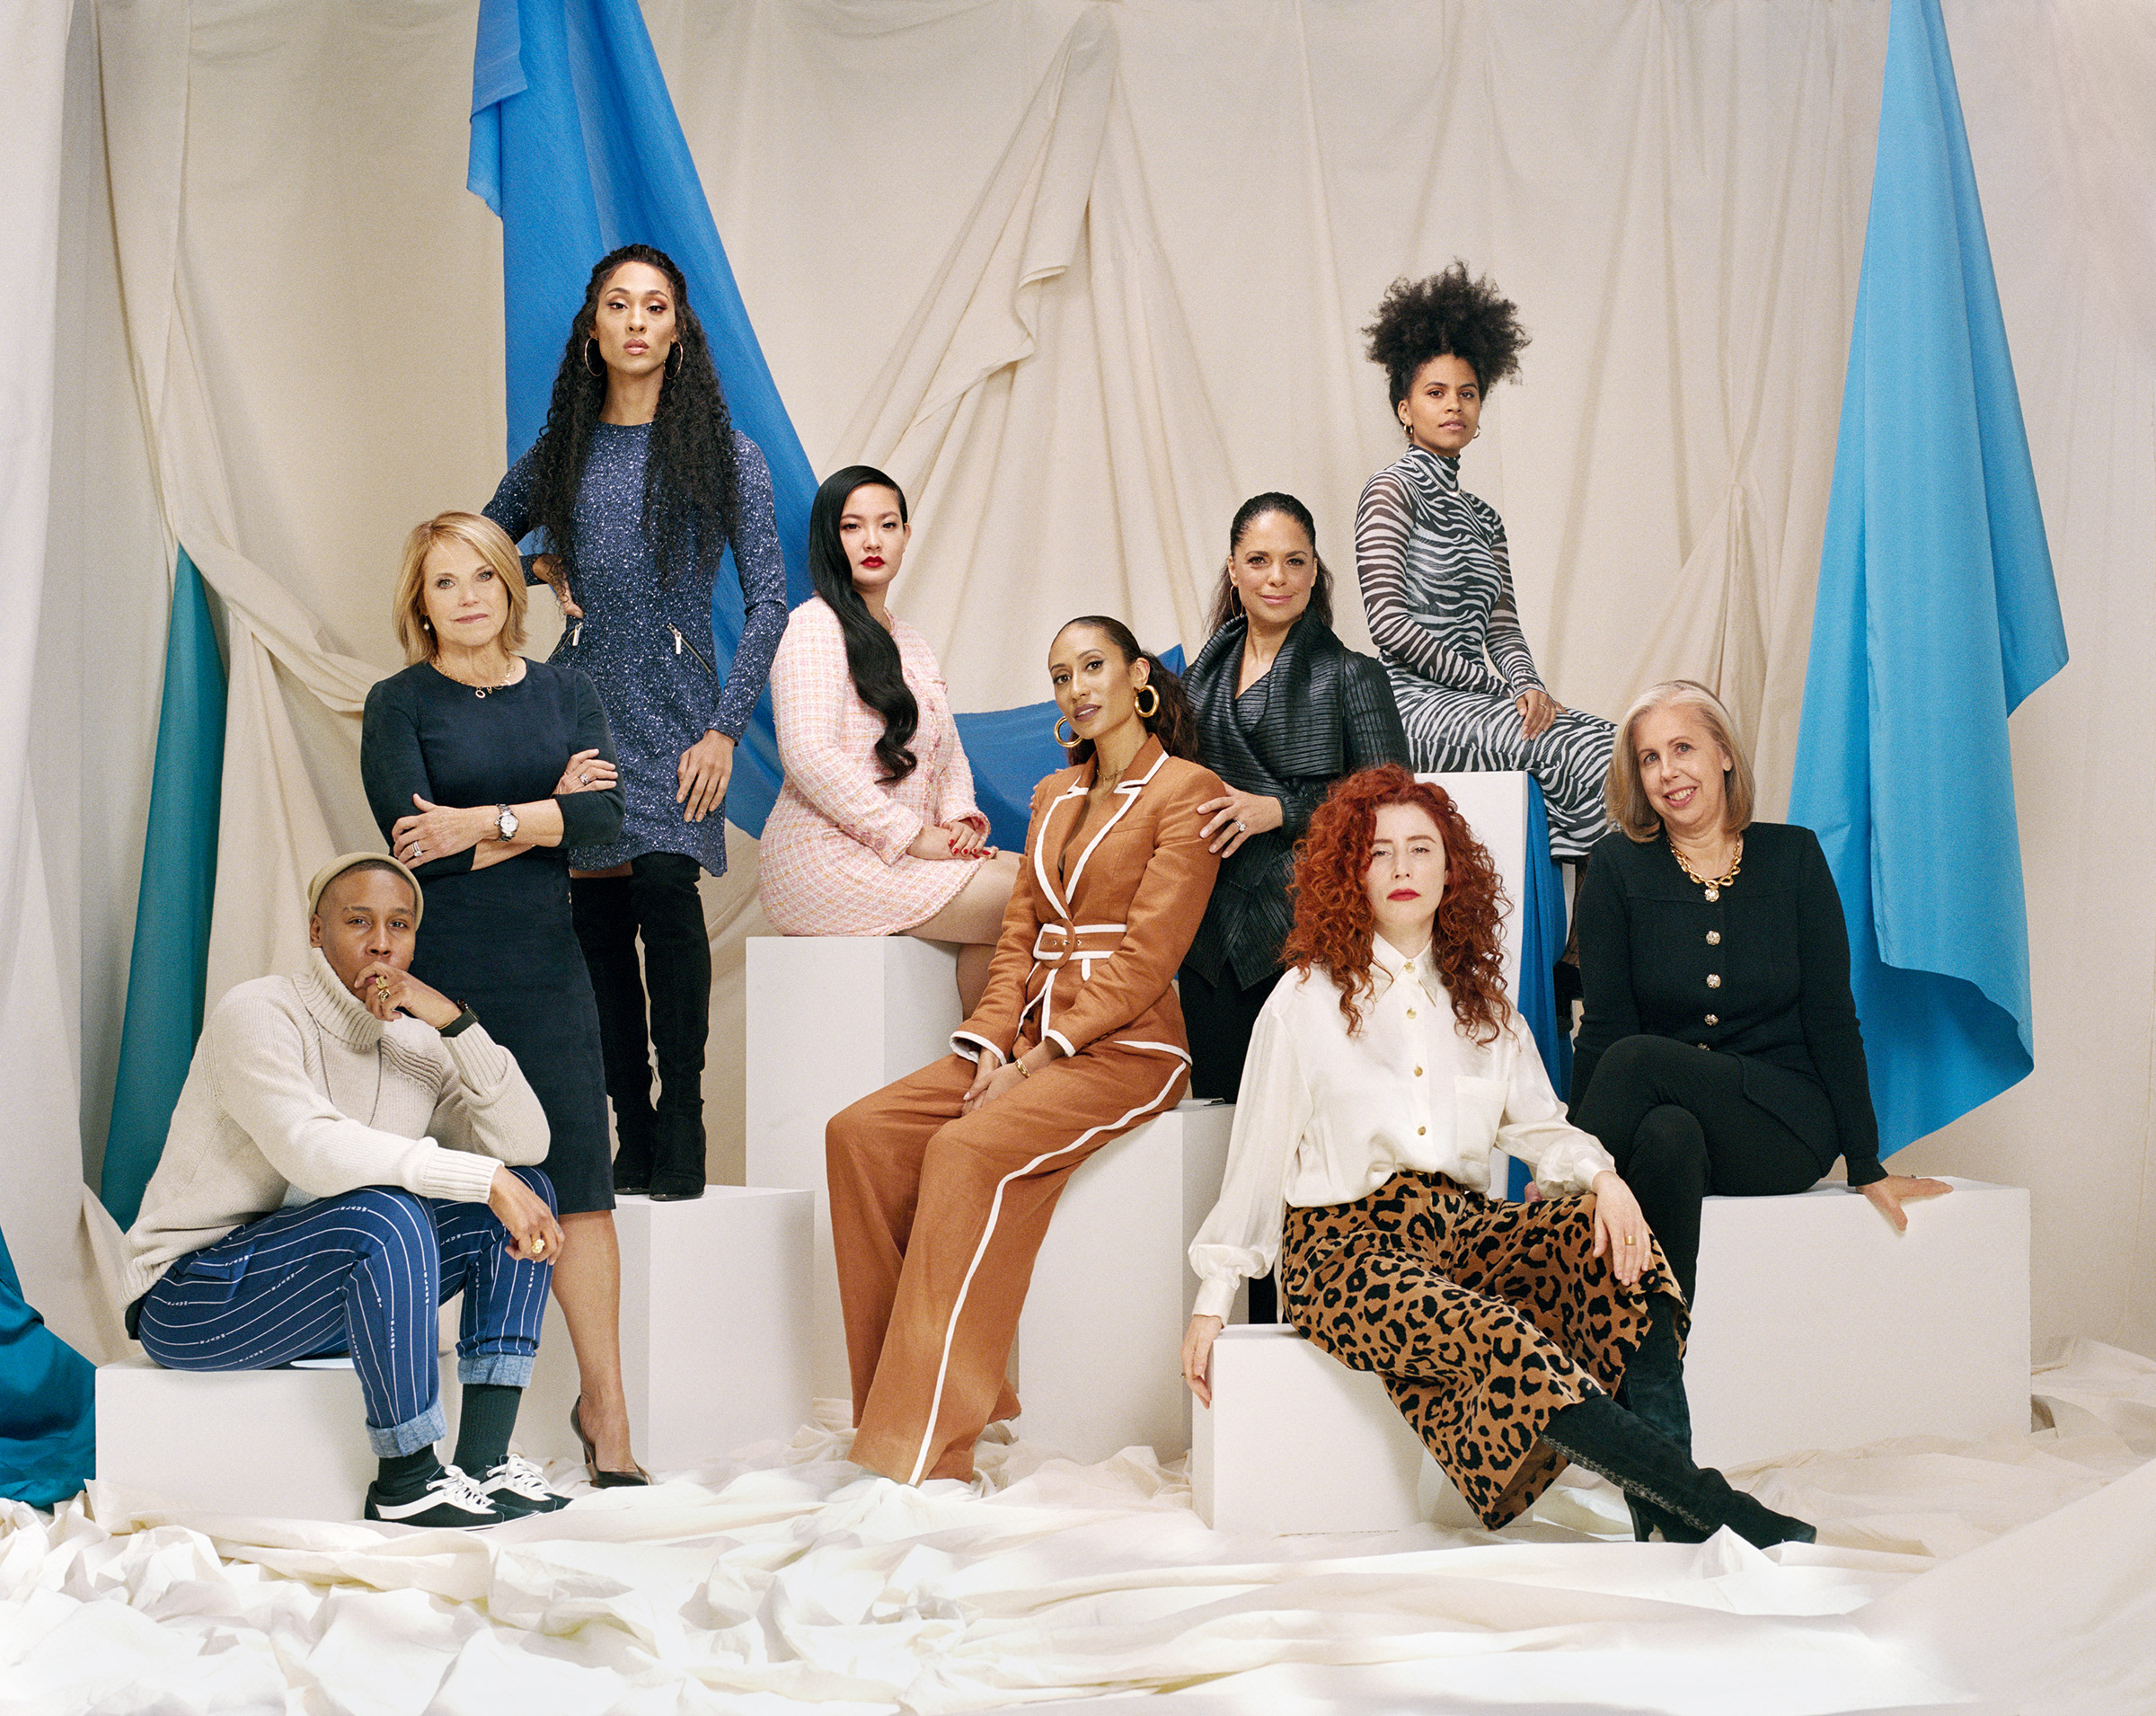 From left: Committee members Lena Waithe, Katie Couric, Mj Rodriguez, Amanda Nguyen, Elaine Welteroth, Soledad O'Brien, Zazie Beetz, Alma Har'el and Nancy Gibbs, photographed on Feb. 16 in New York City